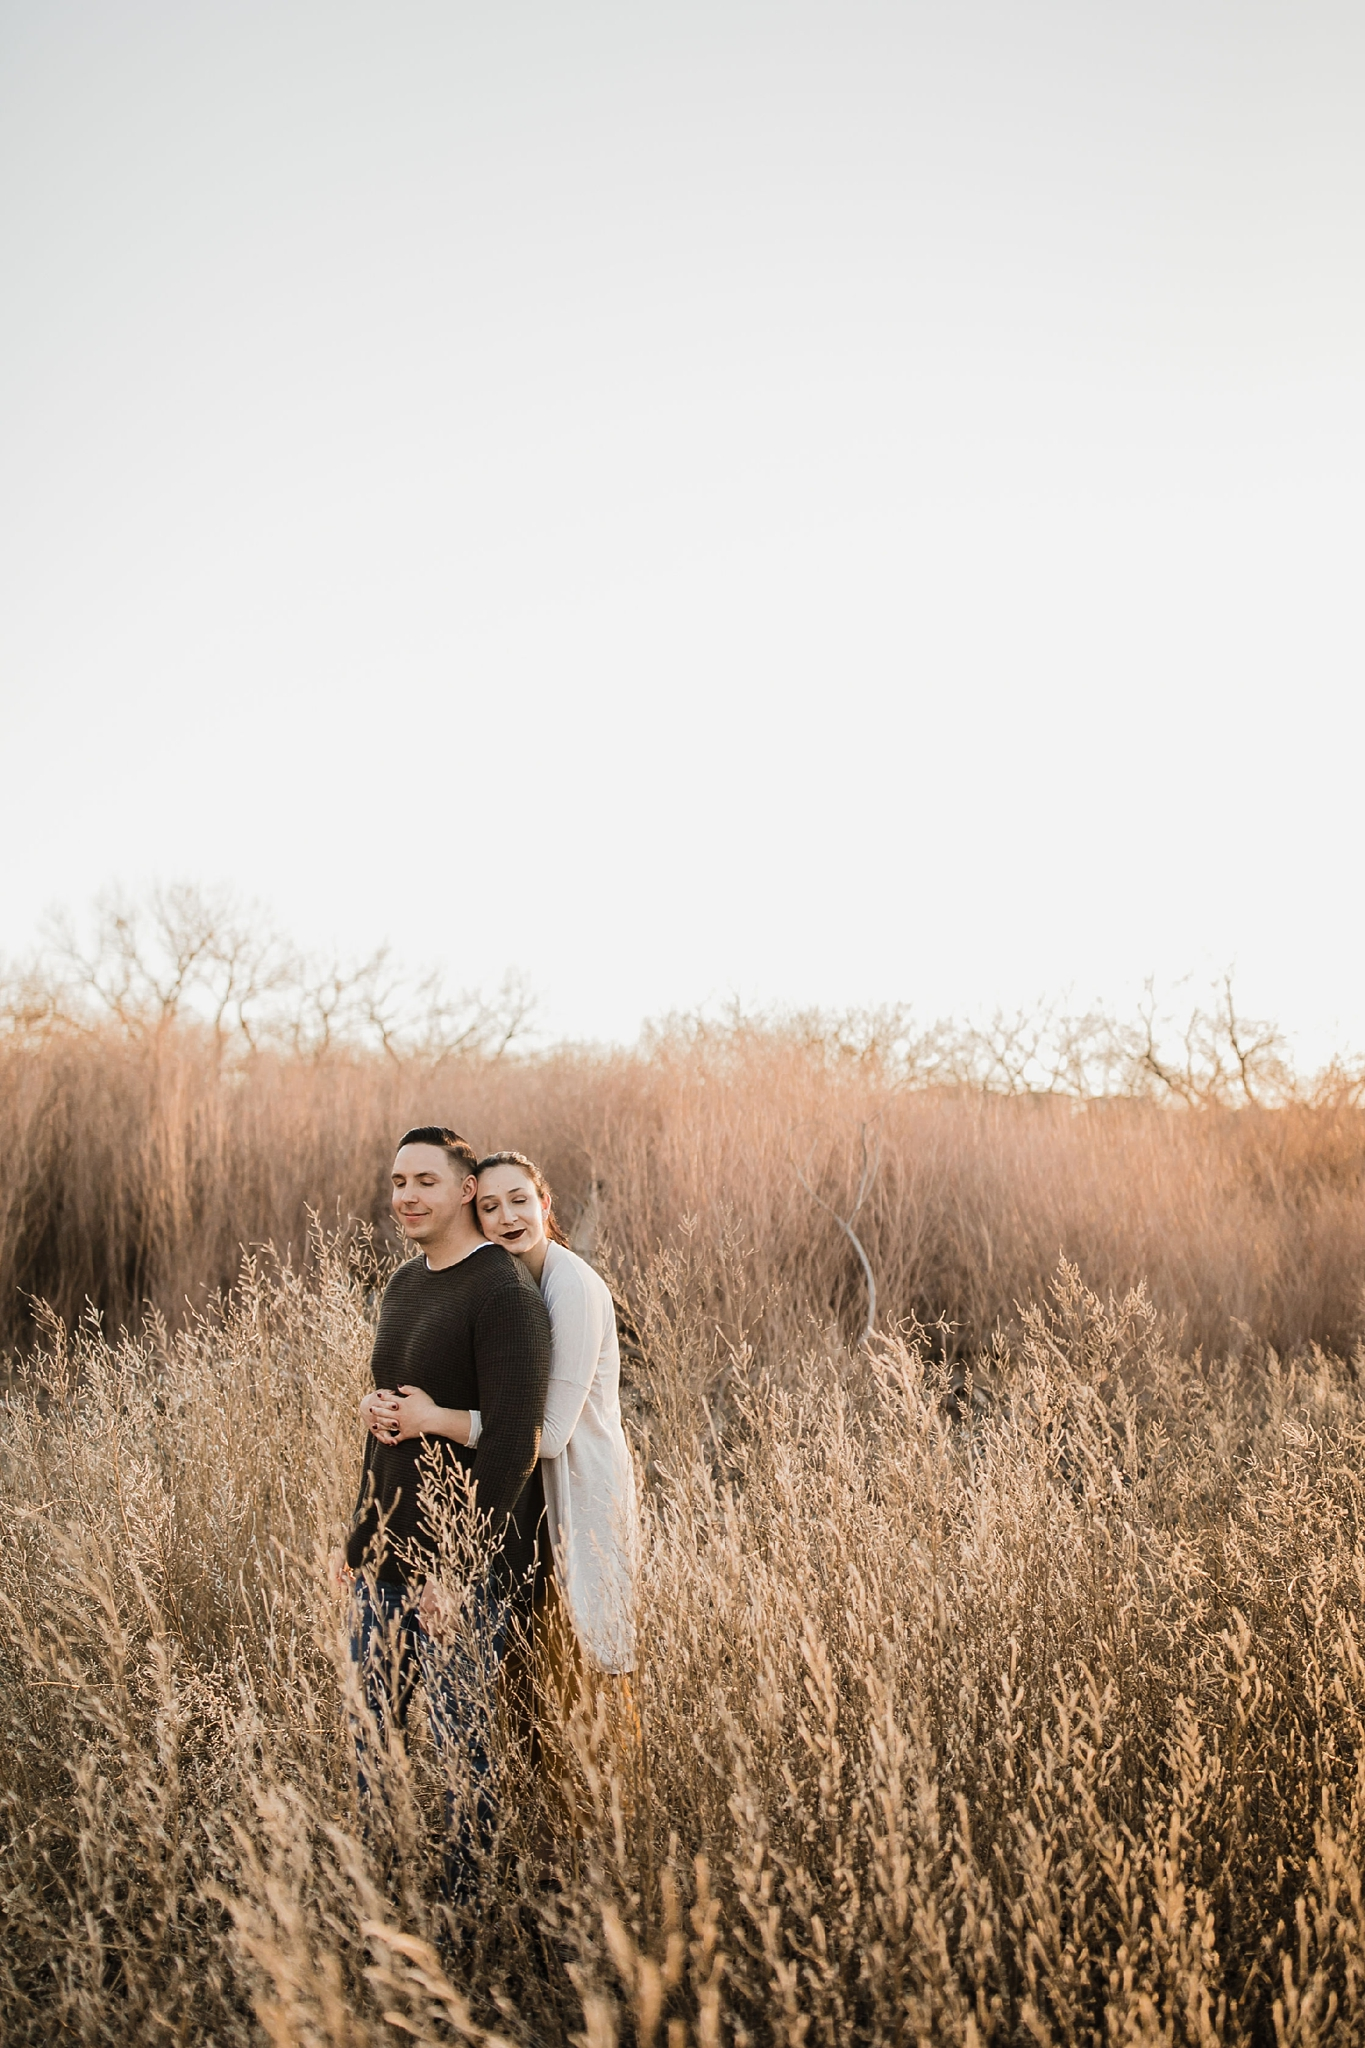 Alicia+lucia+photography+-+albuquerque+wedding+photographer+-+santa+fe+wedding+photography+-+new+mexico+wedding+photographer+-+new+mexico+wedding+-+engagement+-+new+mexico+engagemnt+-+outdoor+engagement_0008.jpg